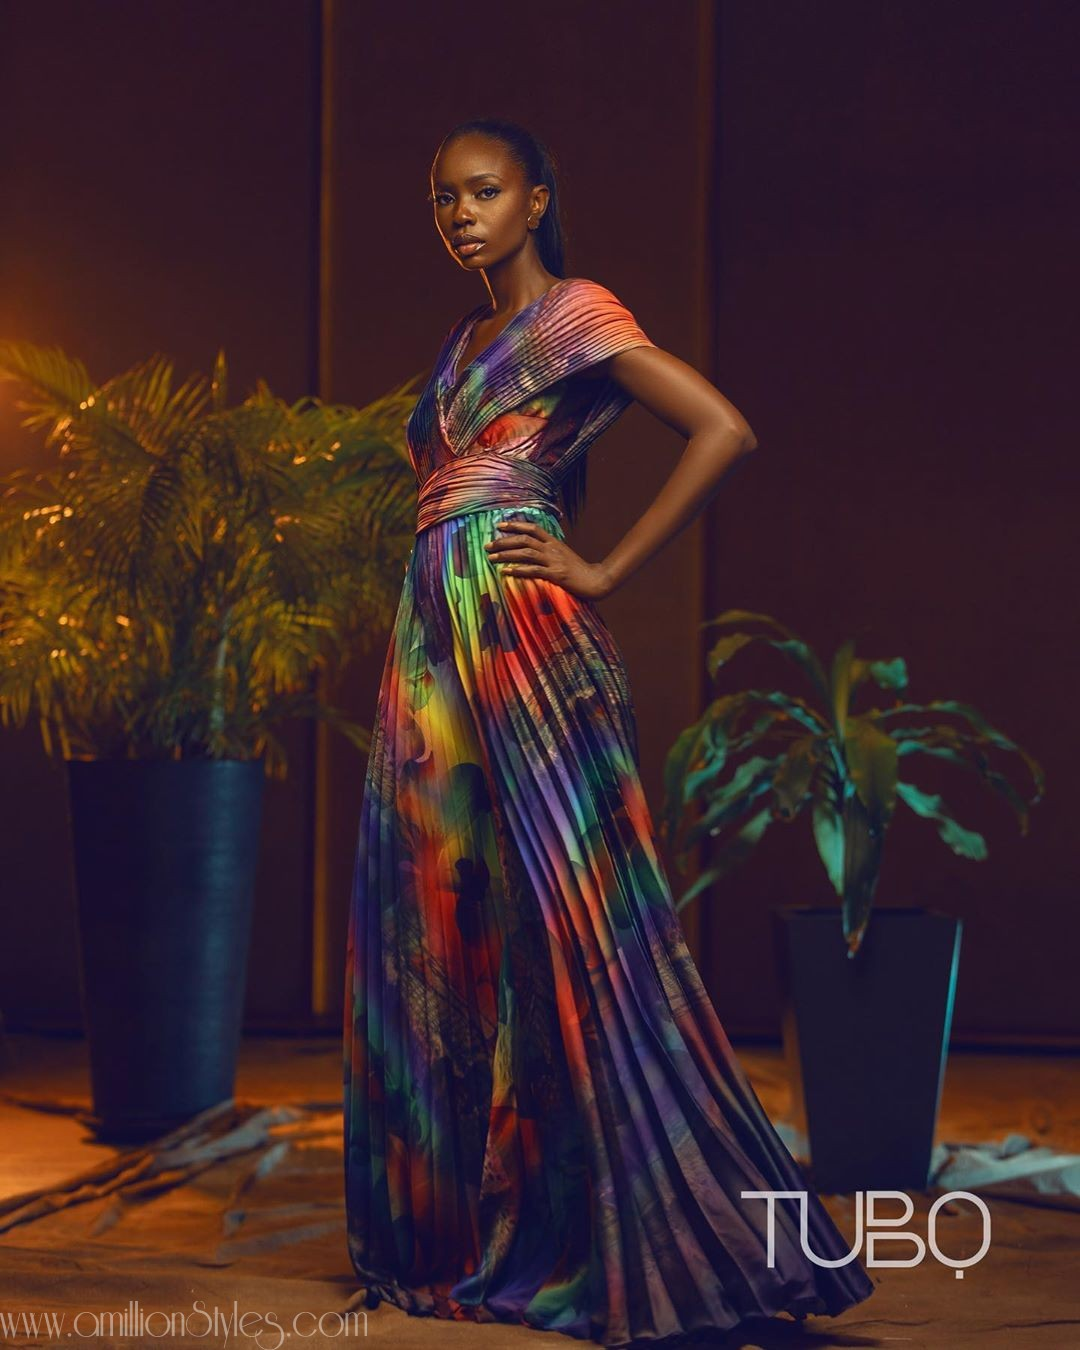 Tubo's Ready To Wear Colorful Pieces Are Must Haves!